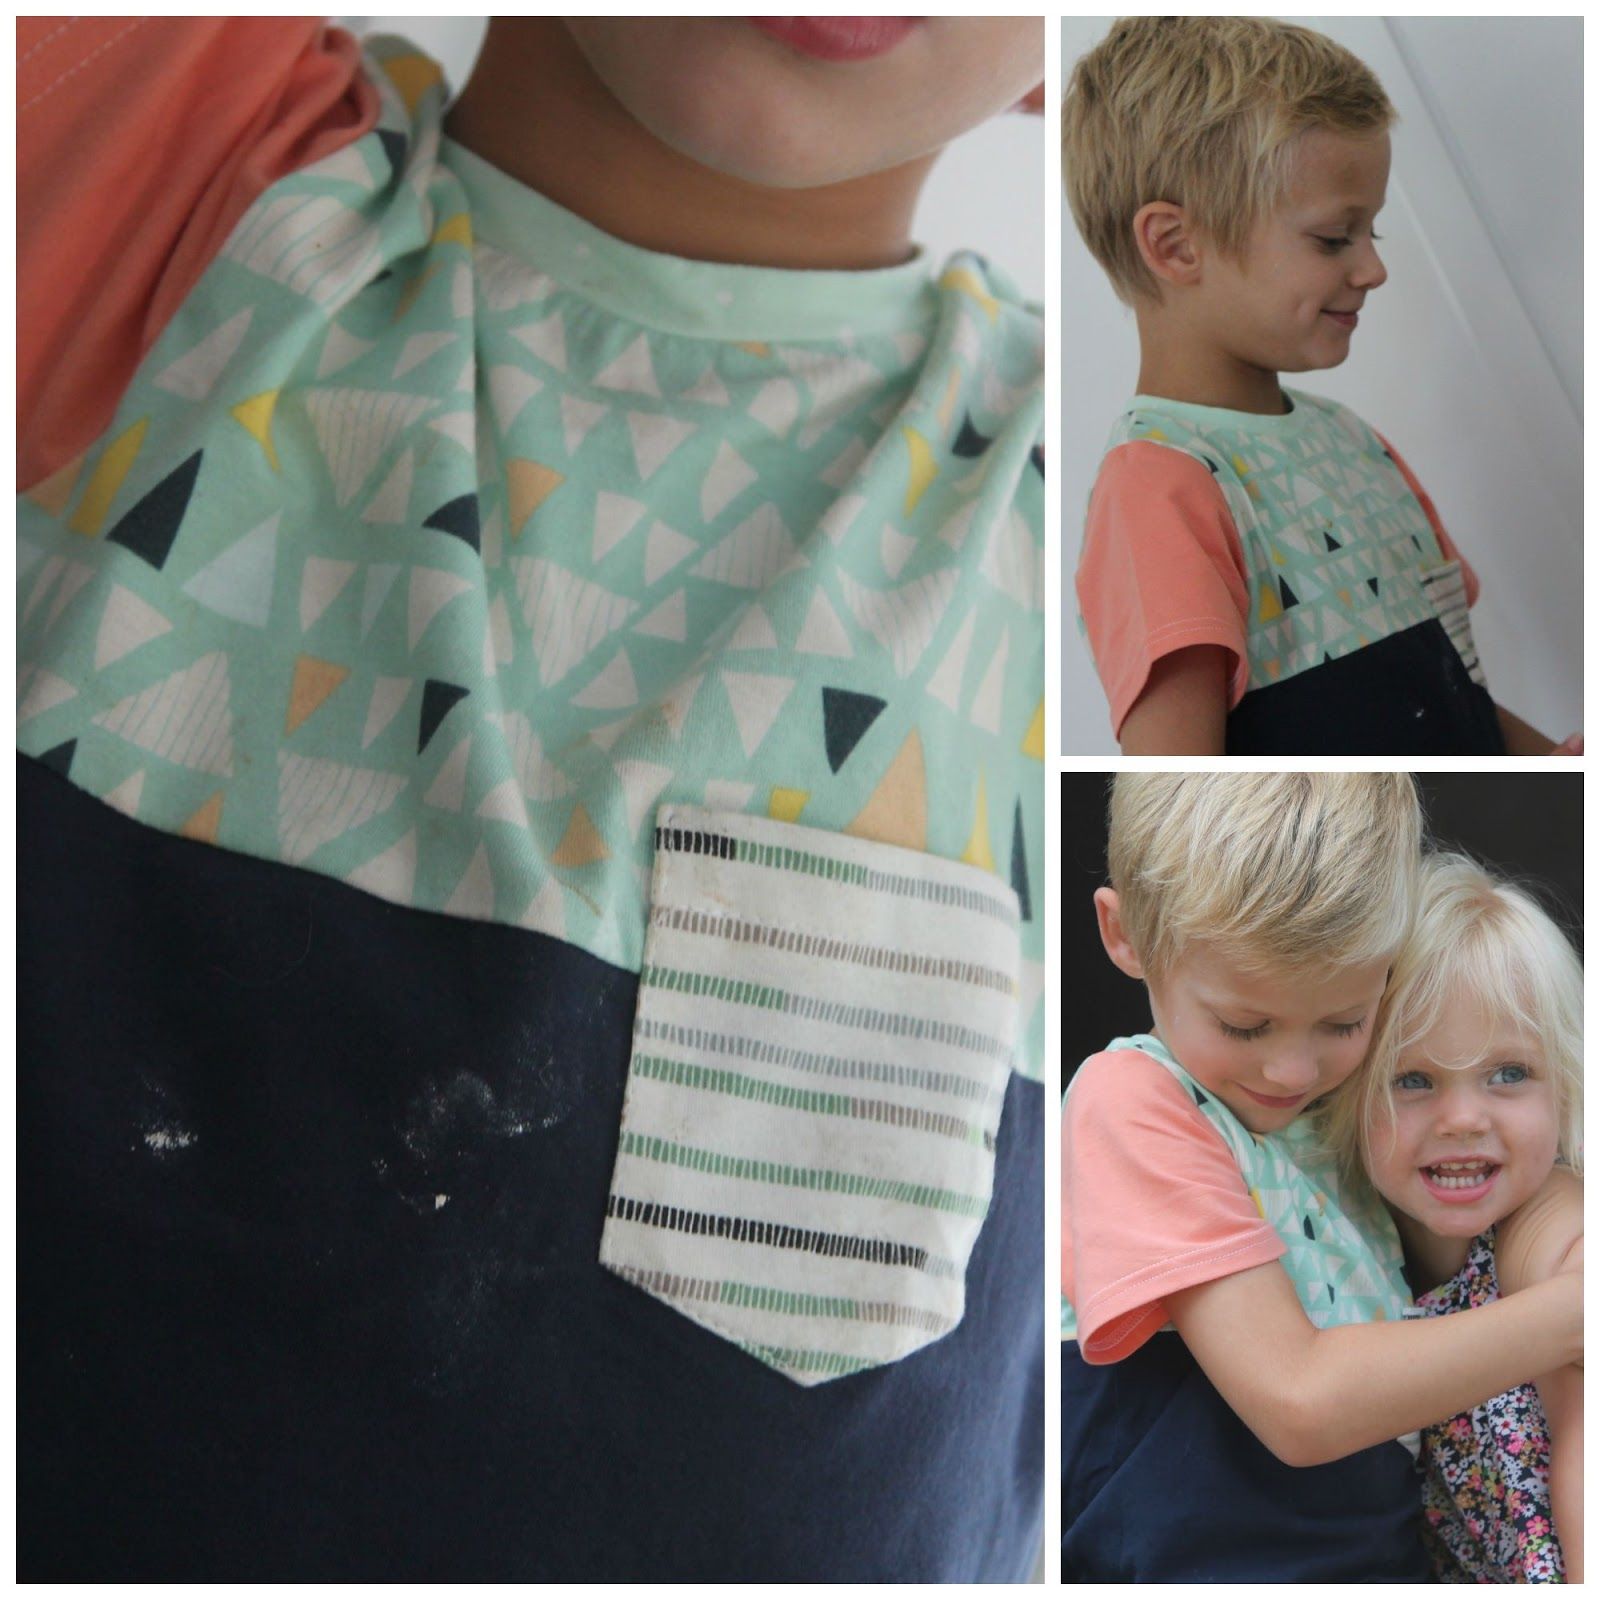 Design your own t-shirt for toddlers - The Patchery Was Founded By Amber Gunn Thomas She Co Owns The Business With Her Tech Genius Husband Ryan Thomas Everything Is Made Cut And Sewn In